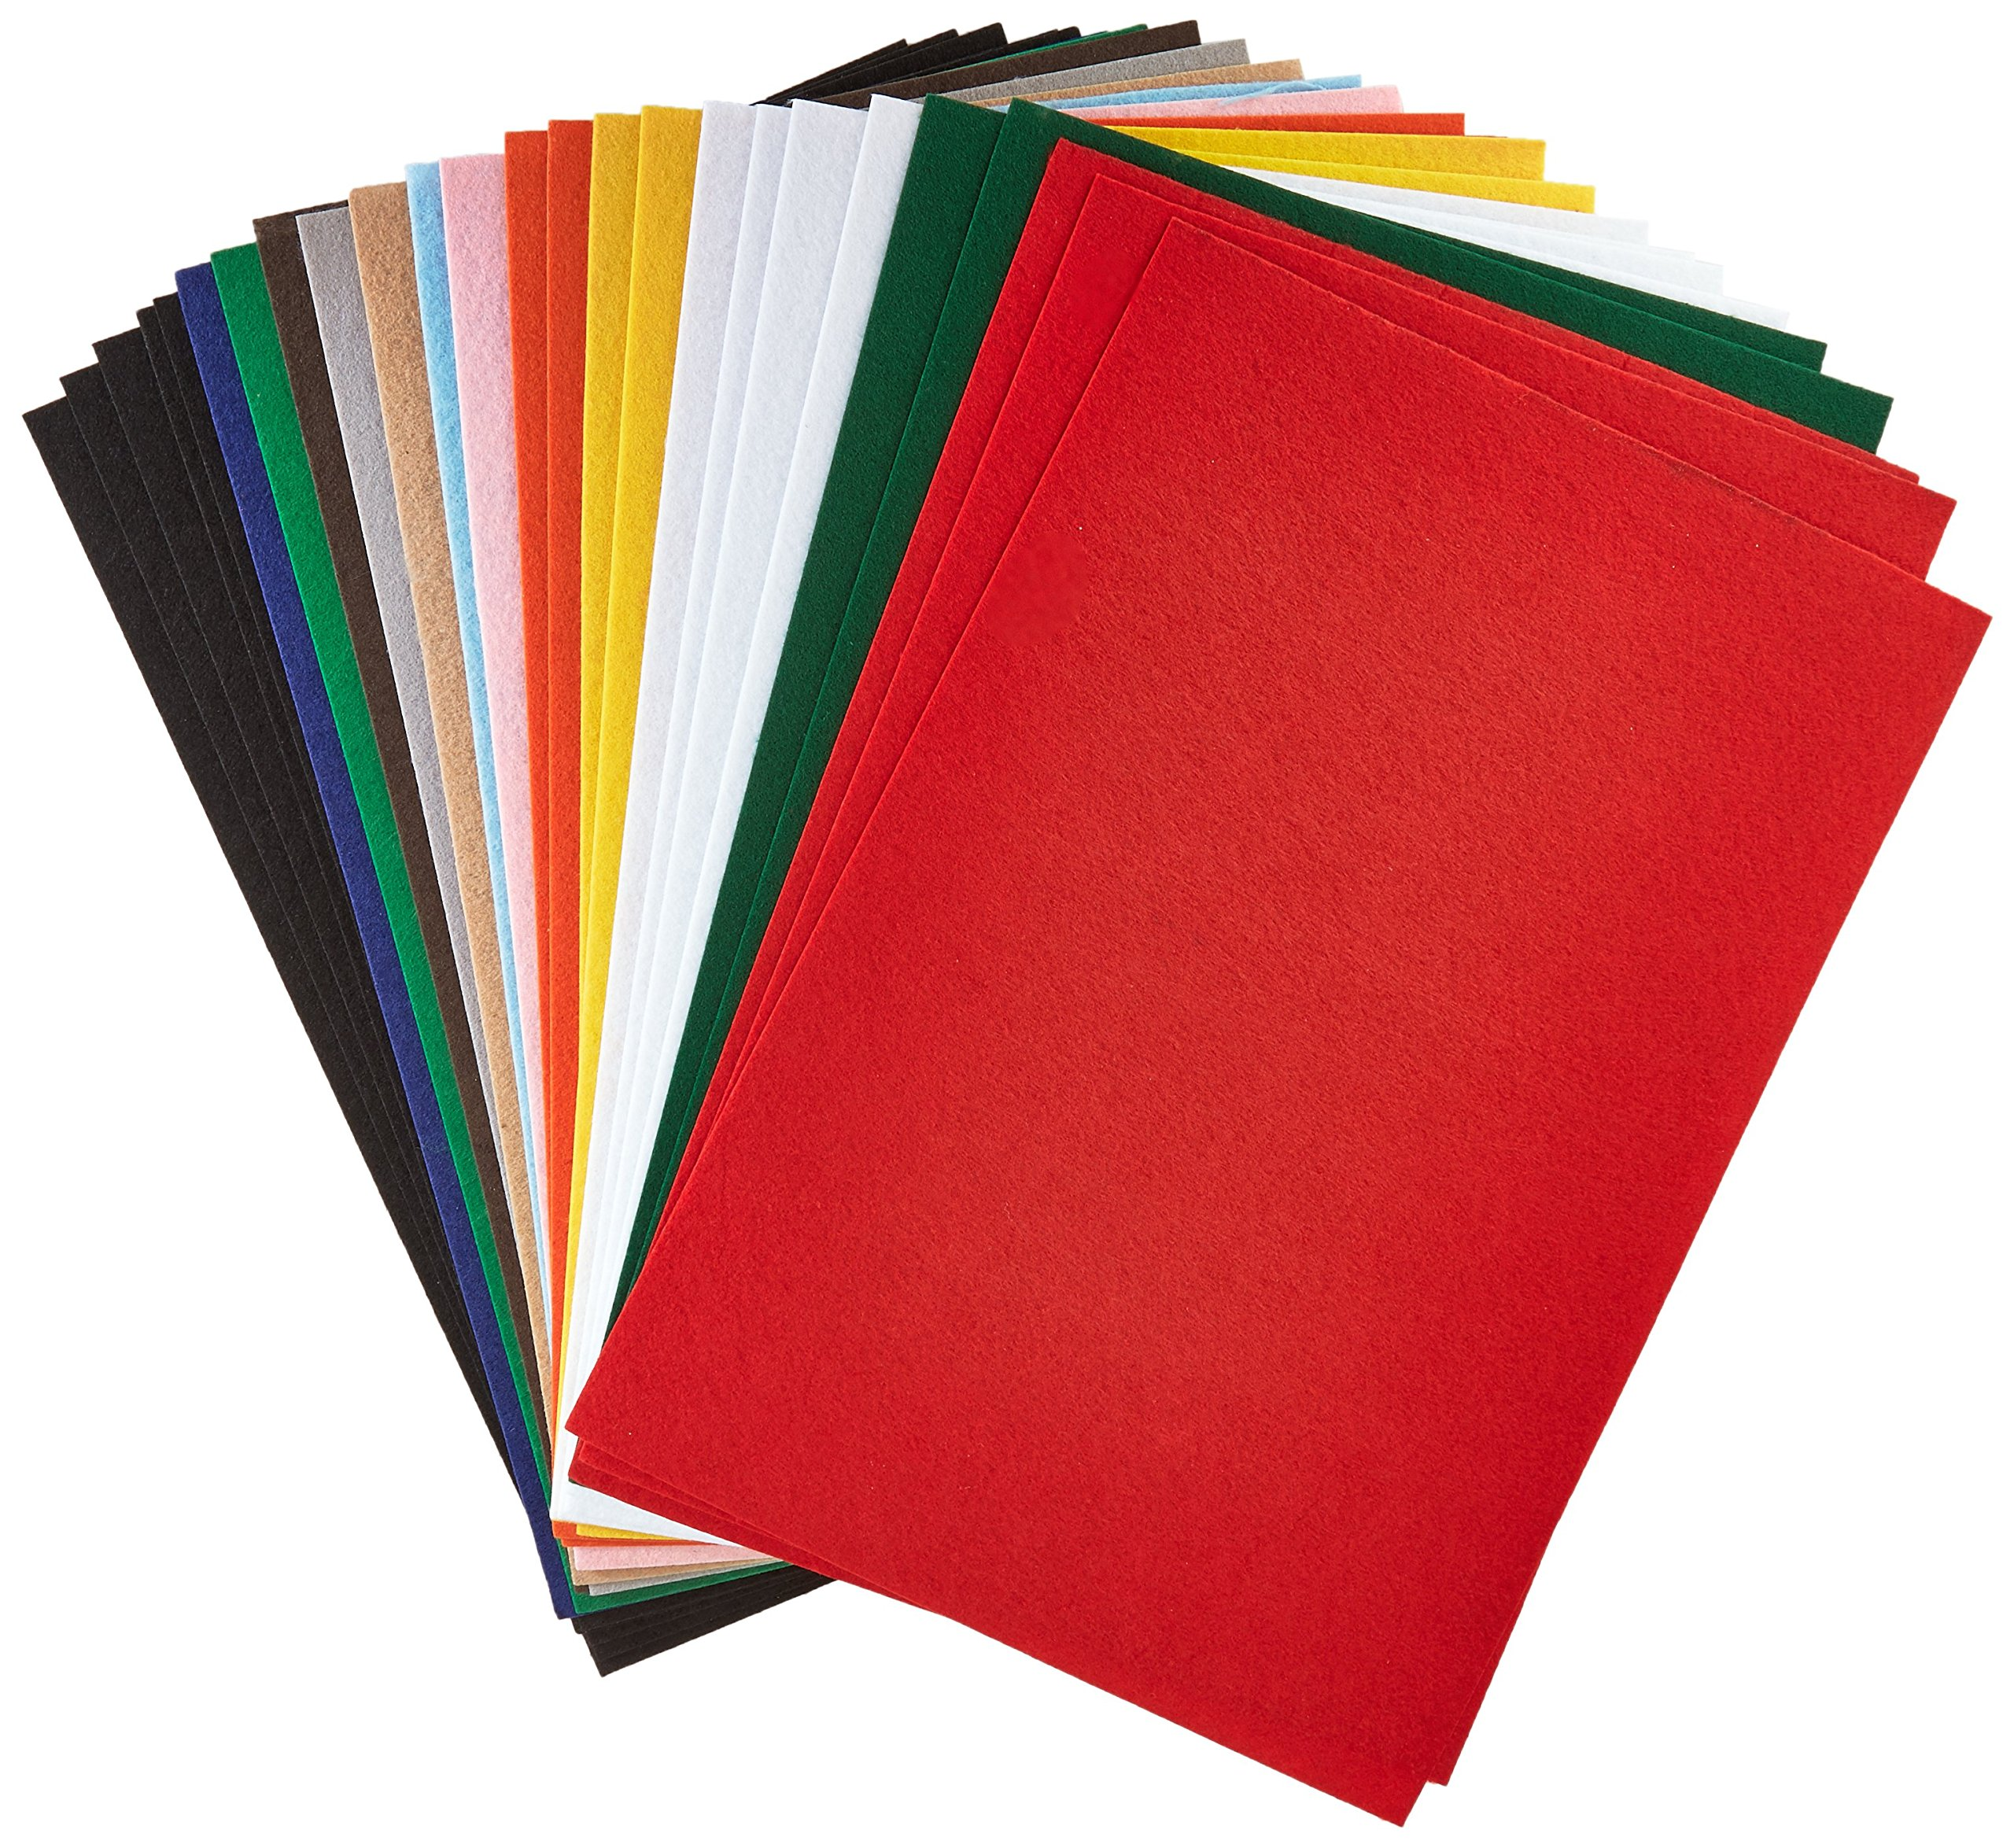 CPE Eazy Felt Solid Stiffened Felt, 12 x 18 Inches, Assorted Color, Pack of 25 by EPC